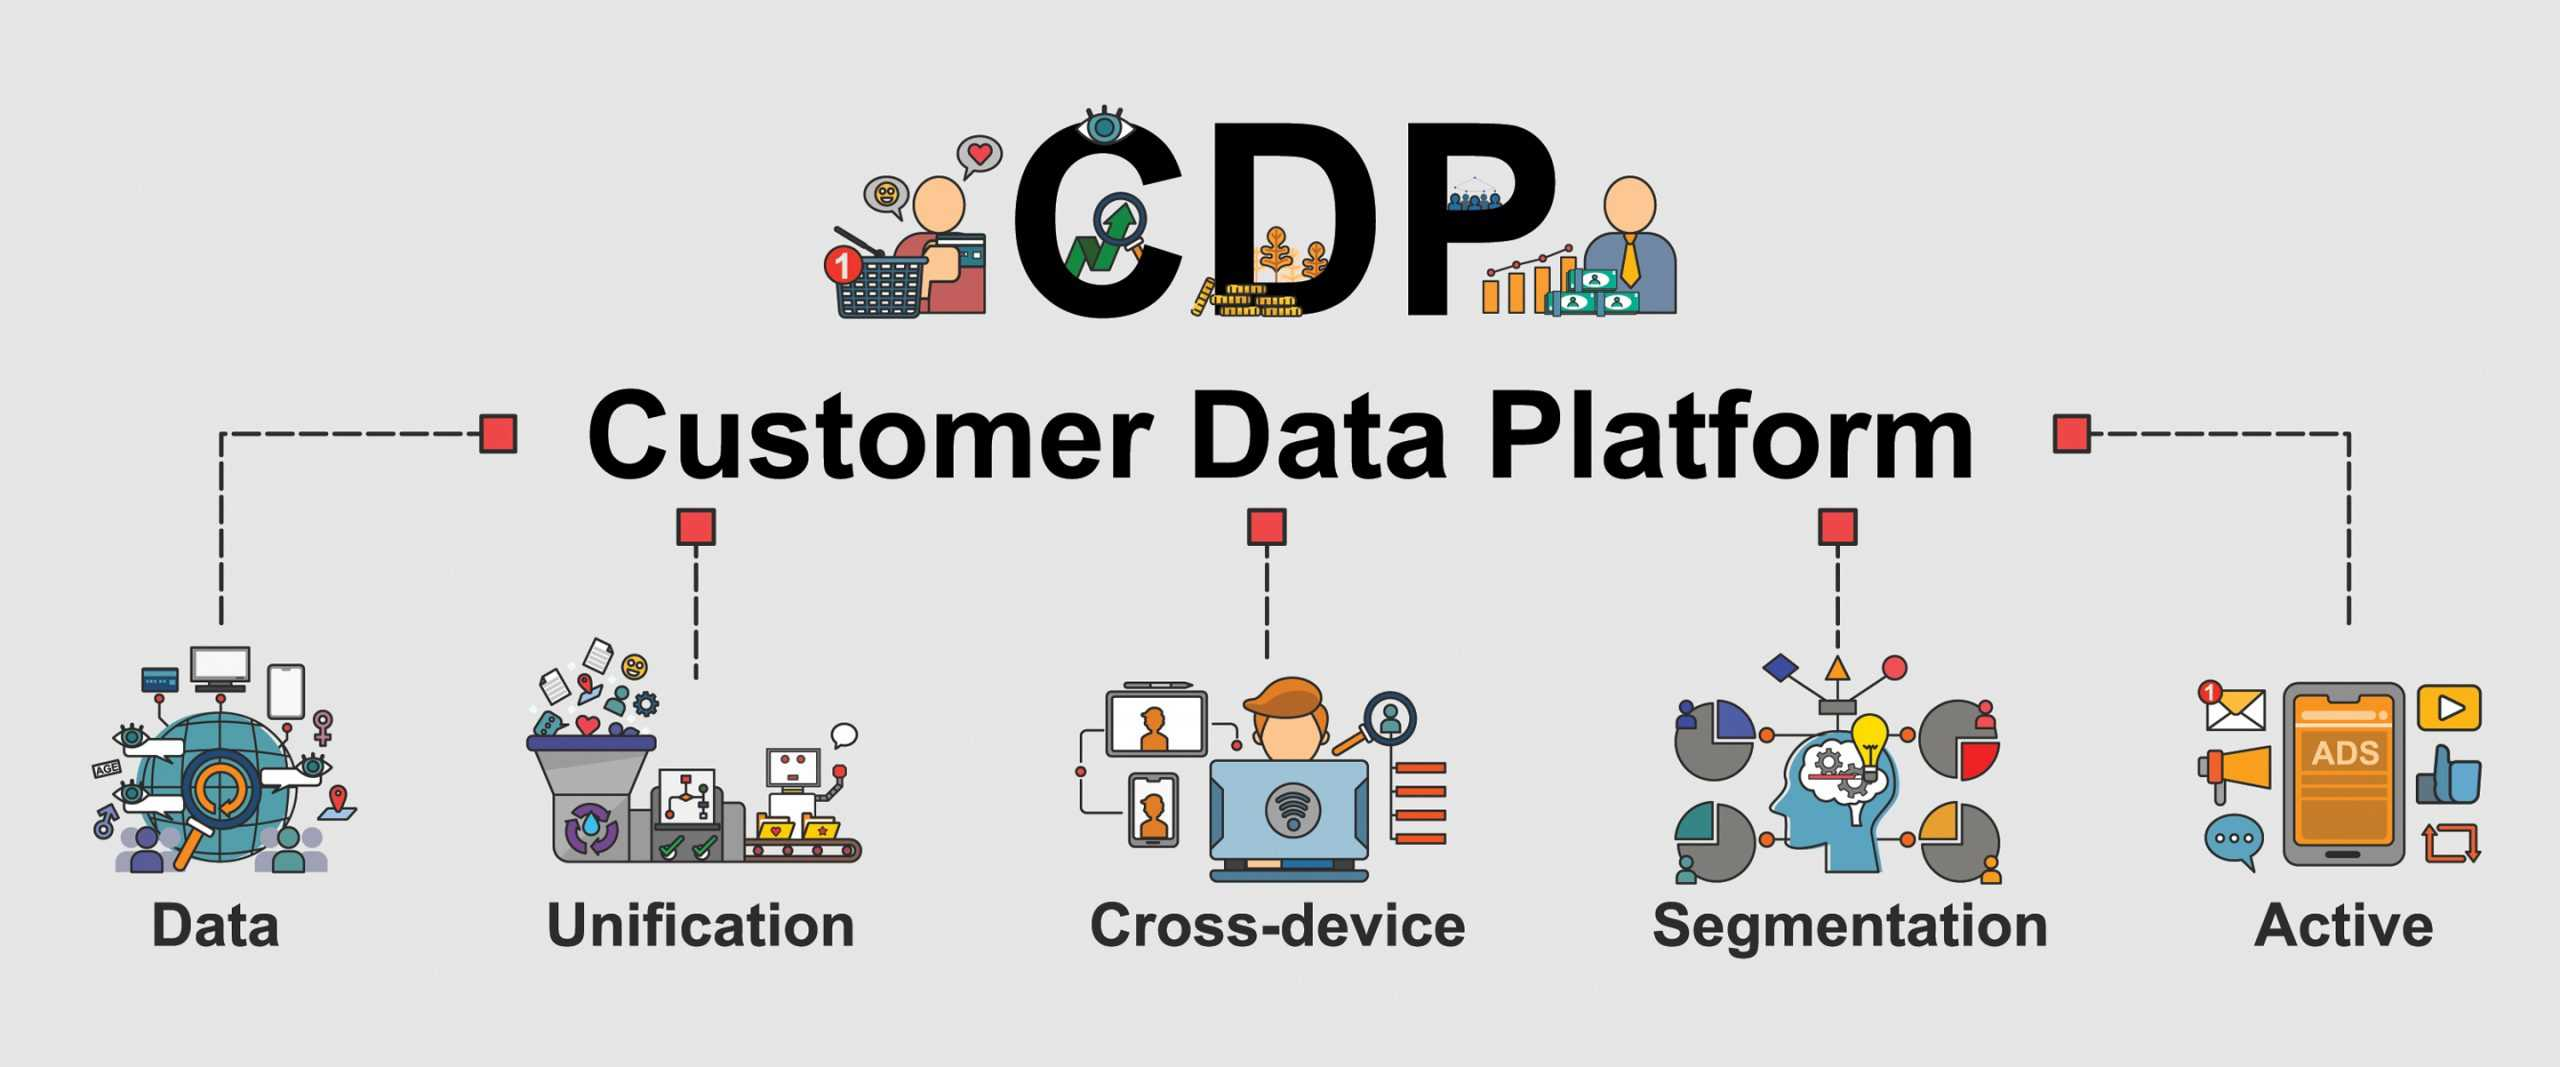 CDPs vital for getting value out of customer data